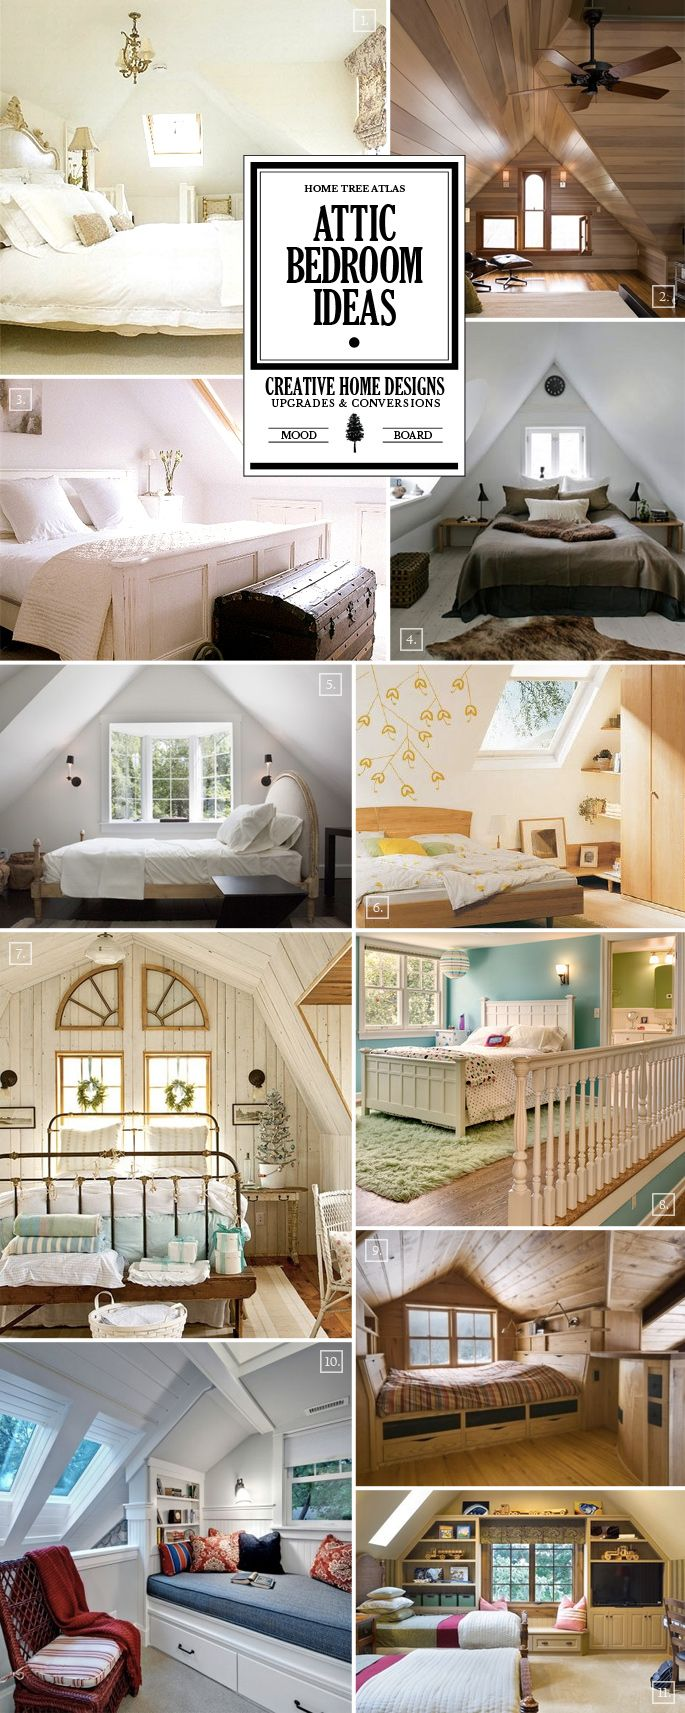 There aren't that many differences when it comes to attic / loft bedroom ideas versus designing any other bedroom in the house. Have a look at my Bedrooms Mood Board Collection page for more specific design ideas and styles. The Uniqueness of an Attic You will likely have an oddly shaped room with angular walls […]